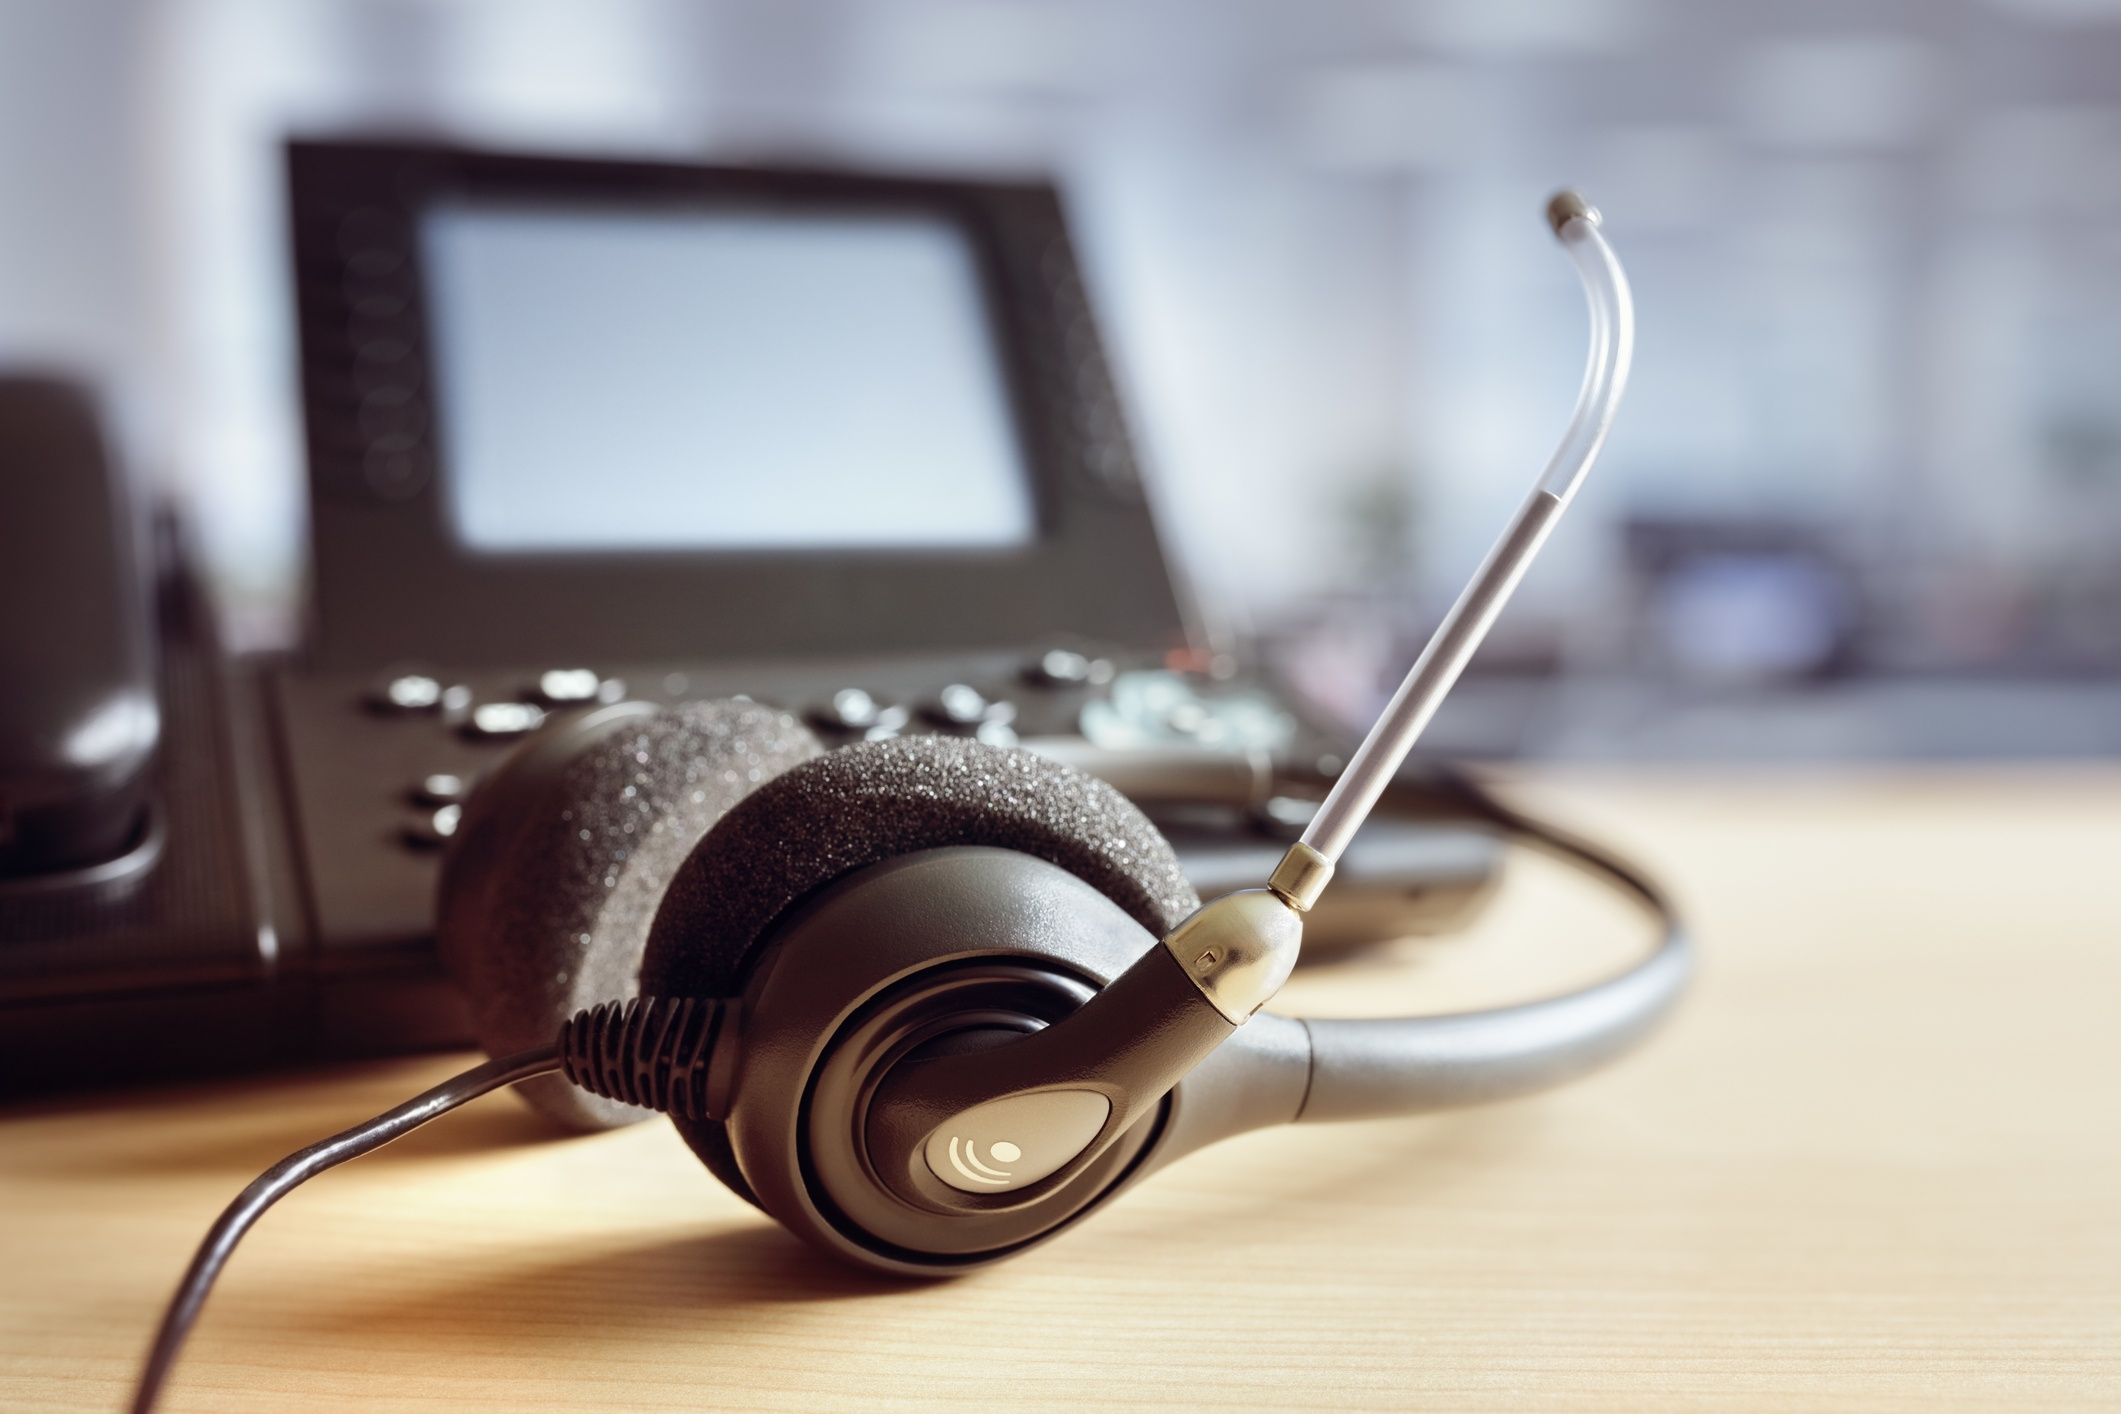 Call Center Listening Sessions: A Direct Path to the Voice of the Customer